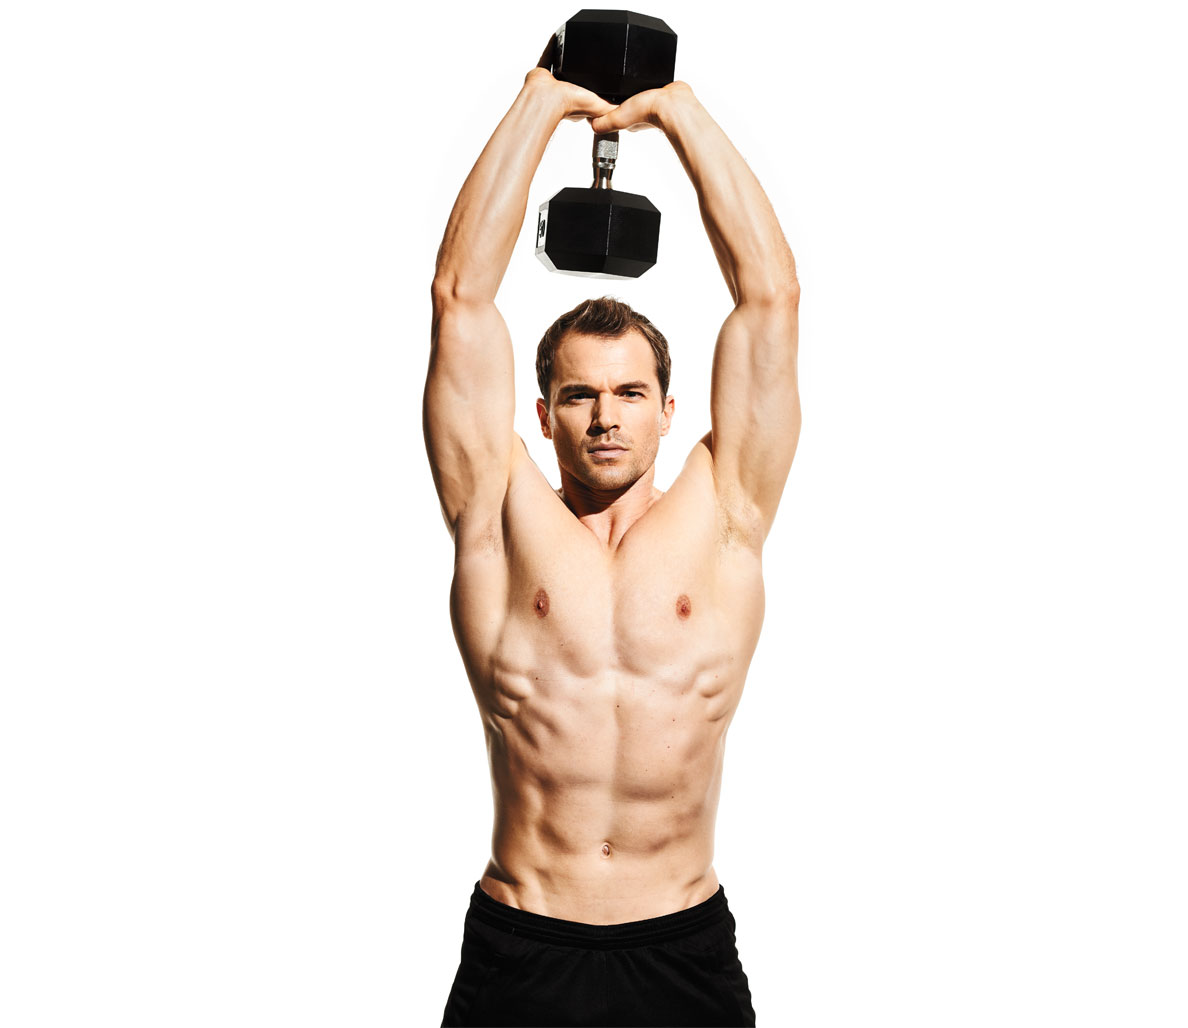 13 Body-Scupting Exercises of the Six Pack in Six Week Program